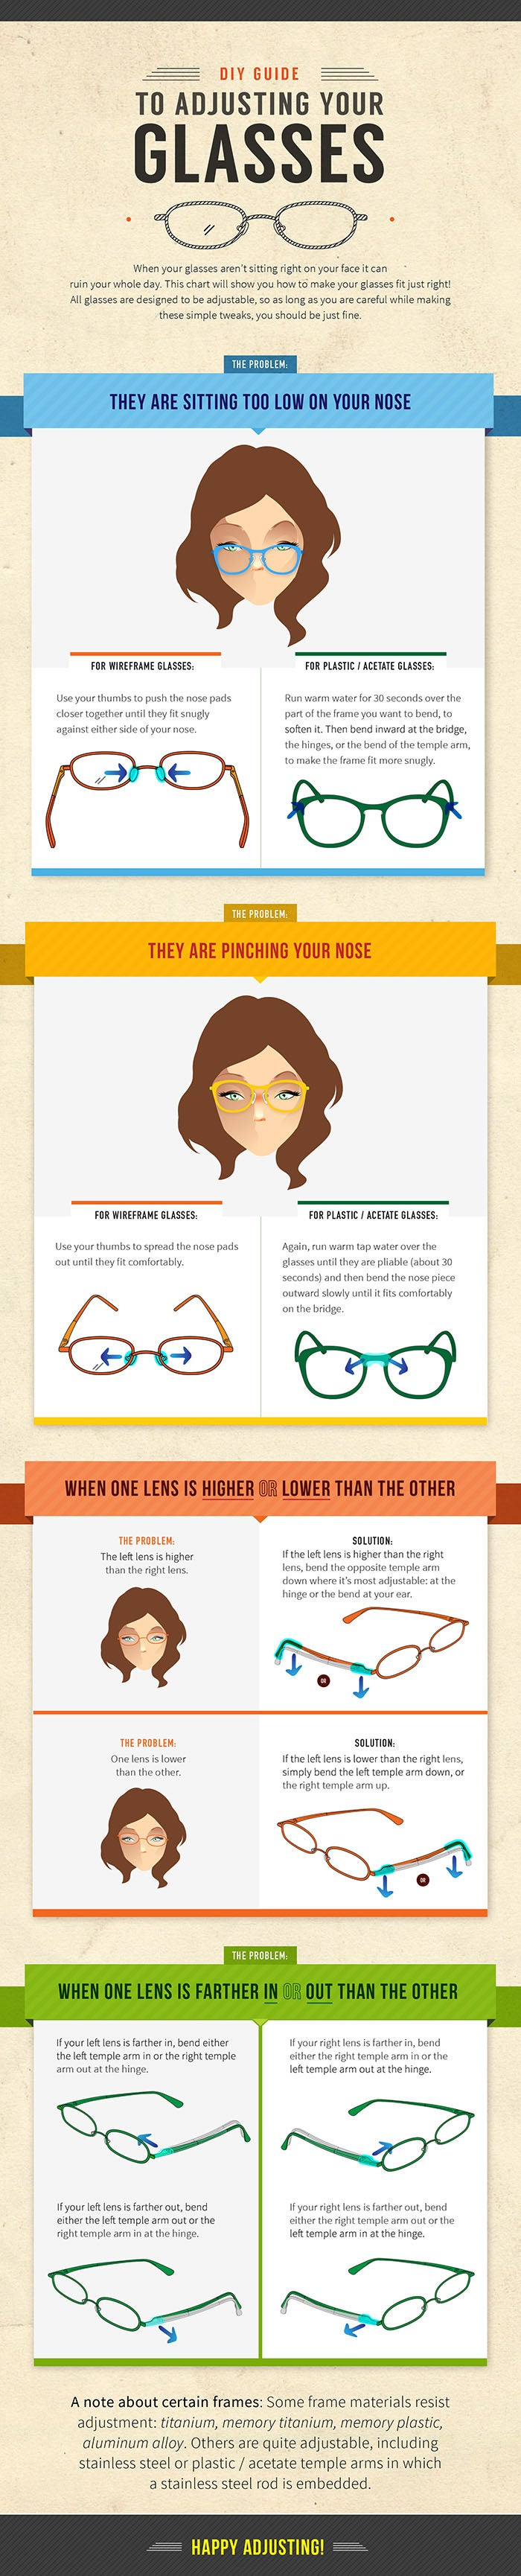 12fede285f A DIY Guide to Adjusting Your Own Glasses